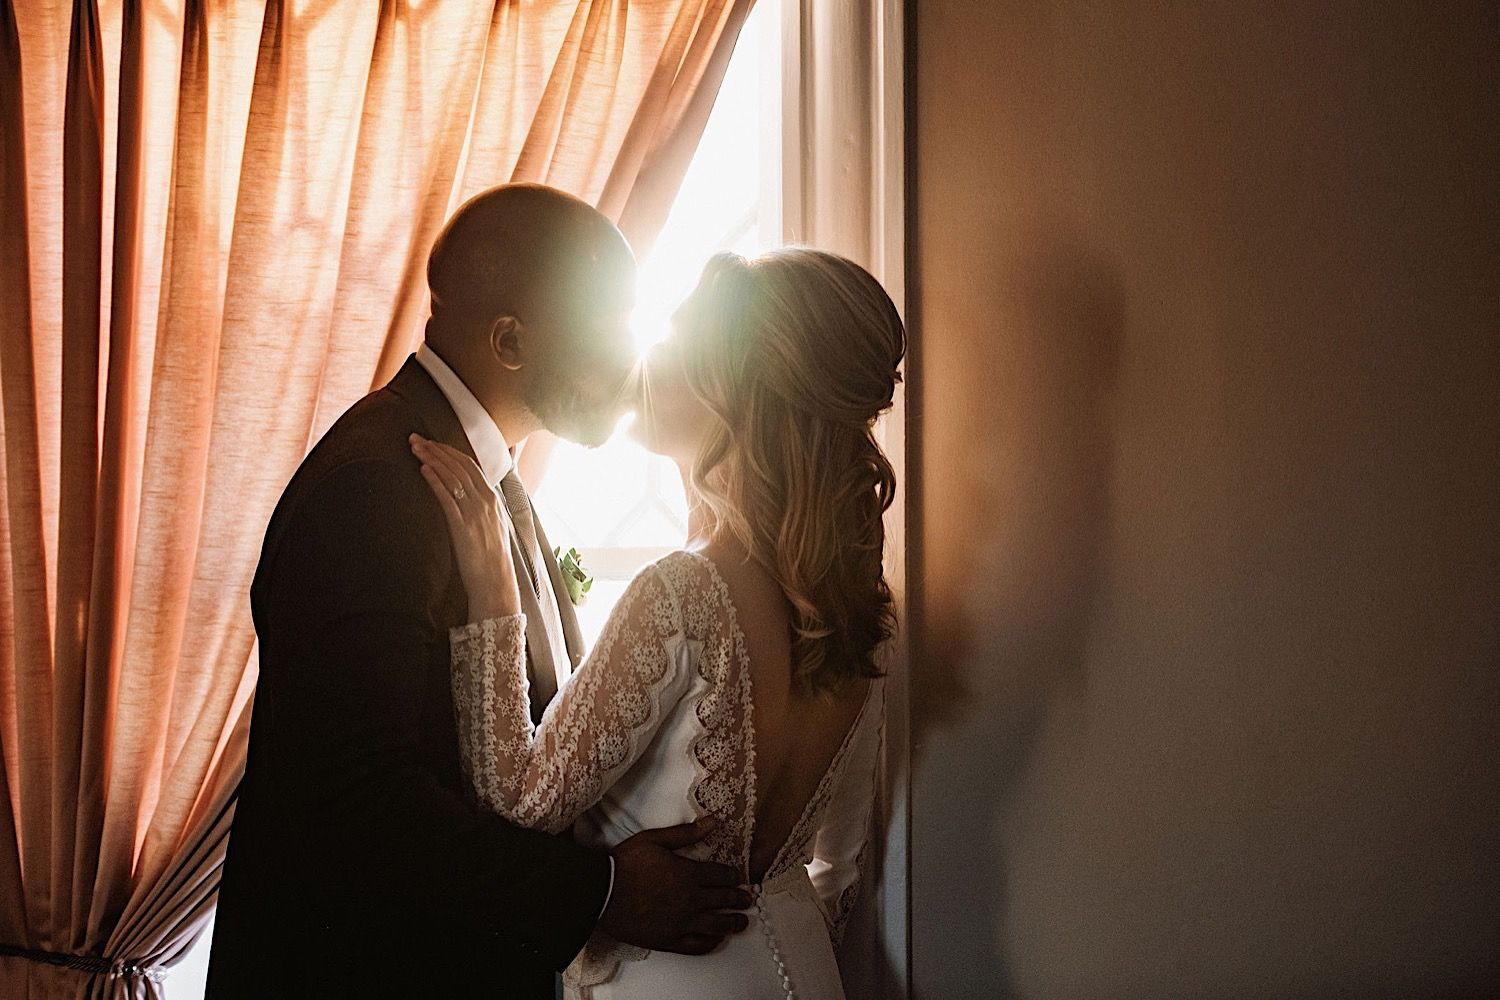 bride and groom kissing in front of a window with sunlight shining thorugh